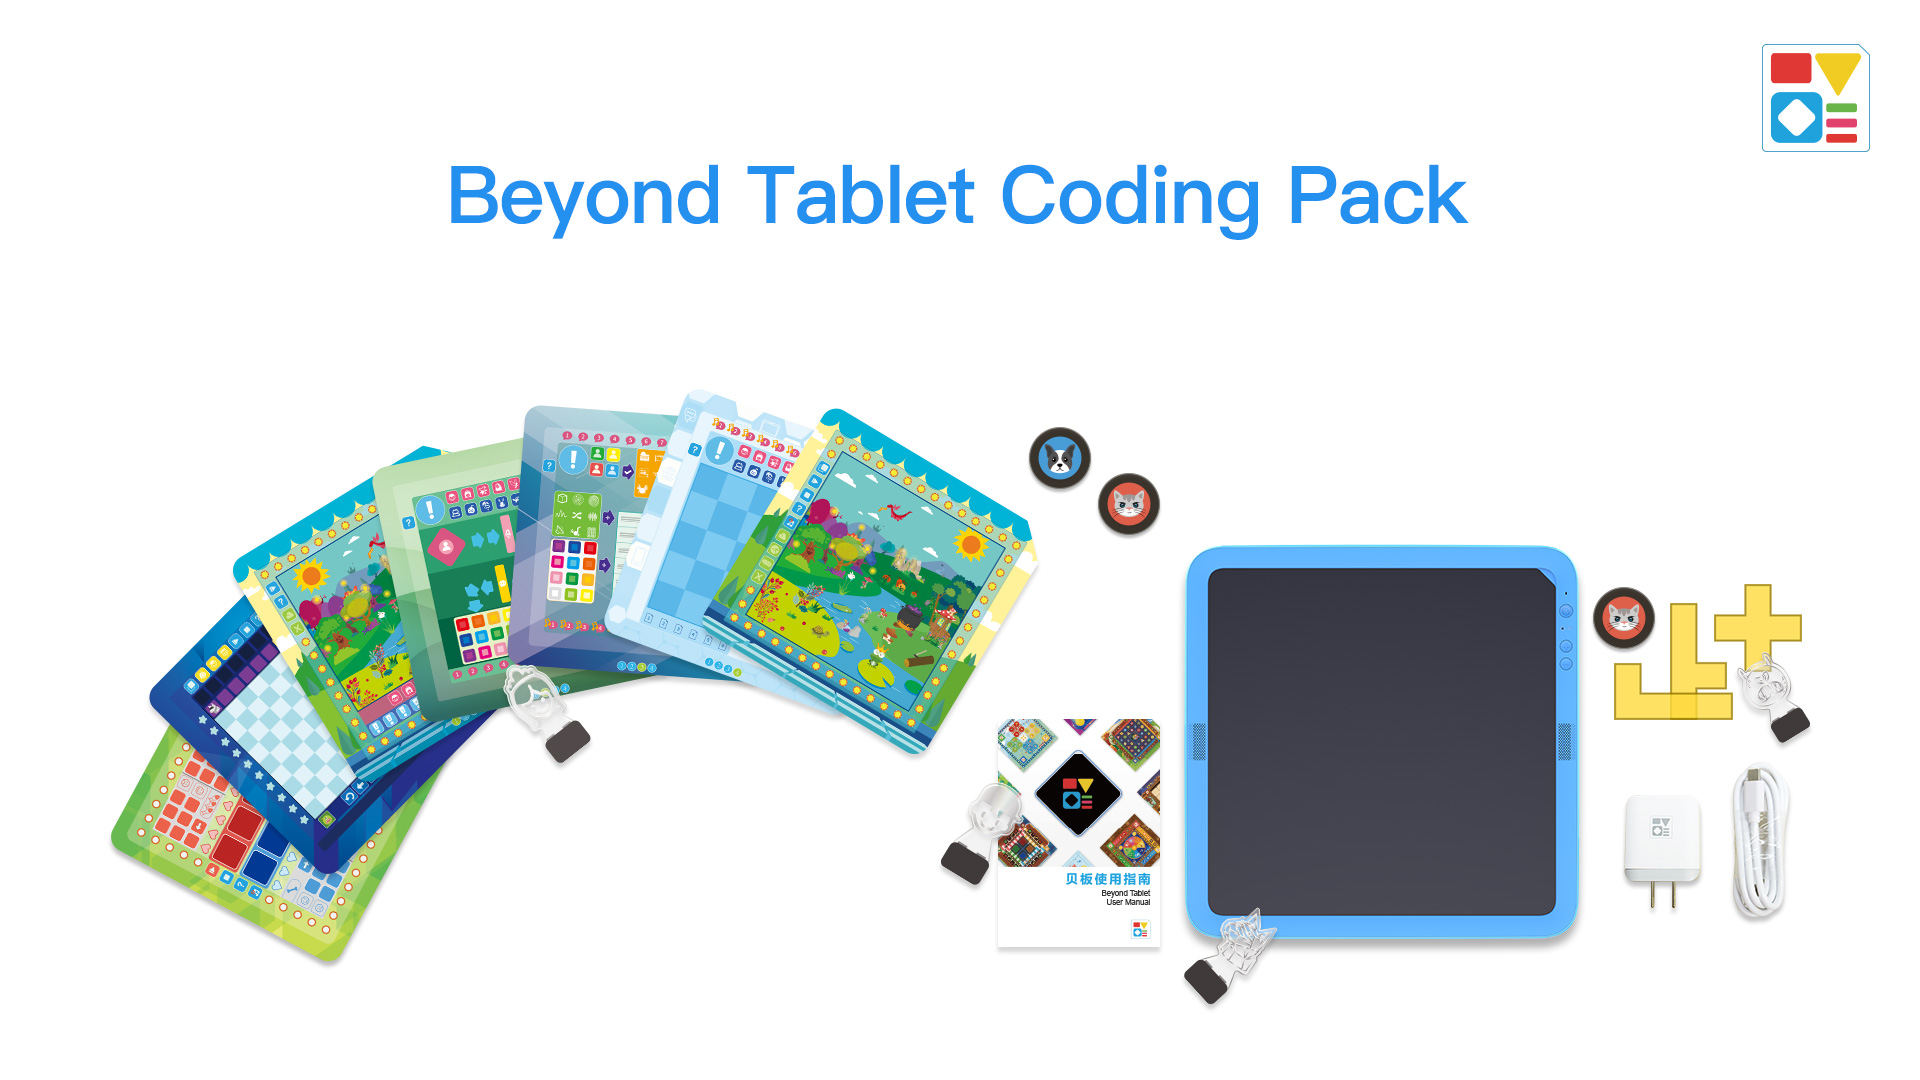 Beyond Tablet Coding Pack - Components